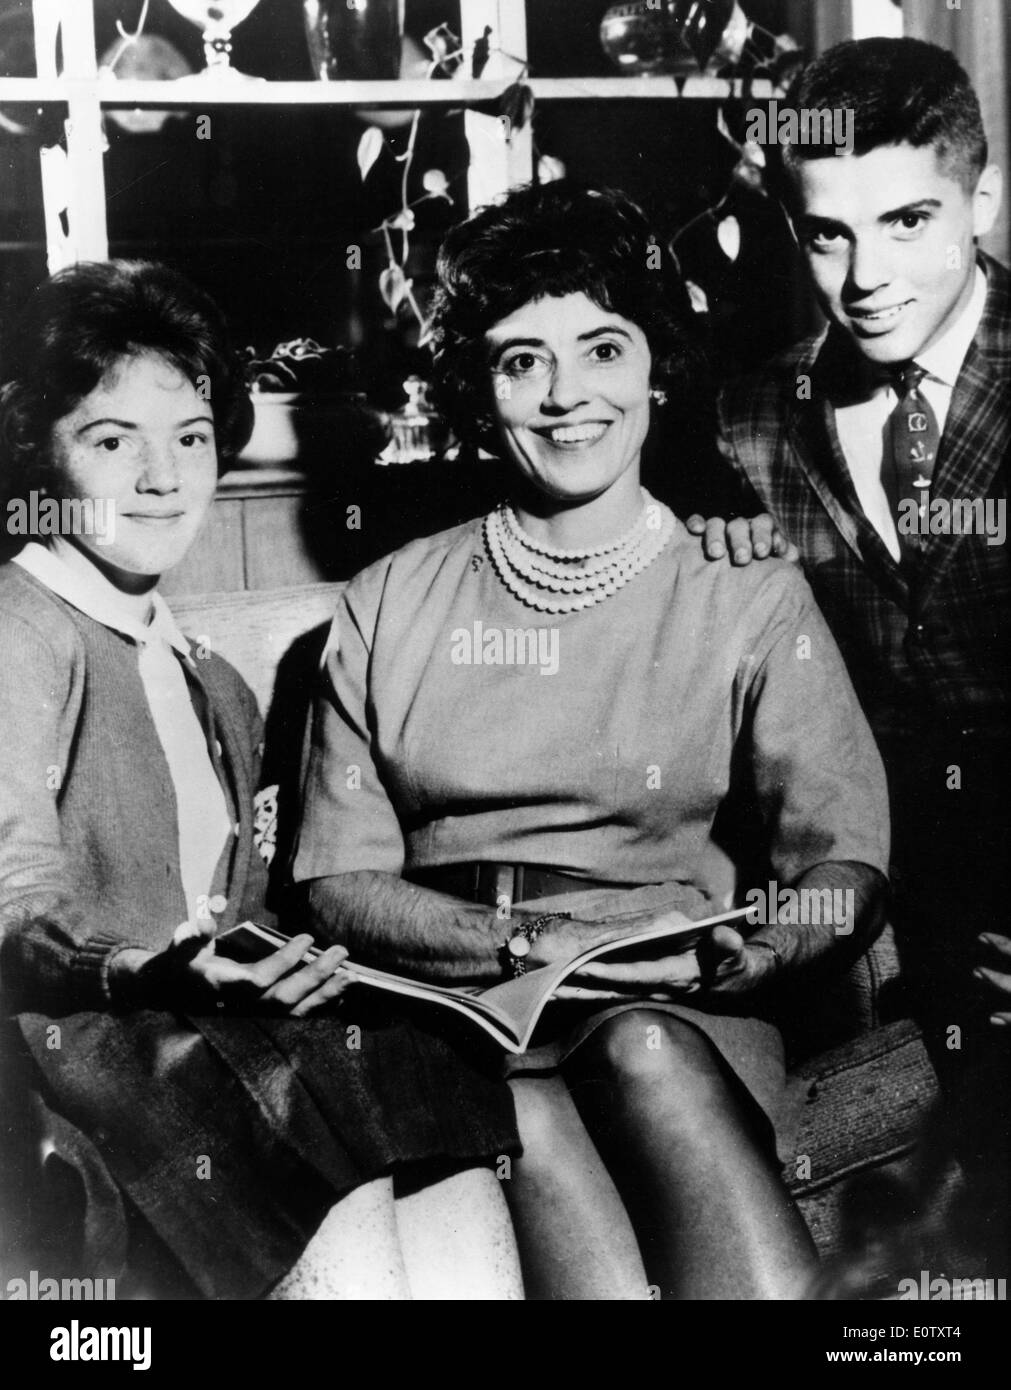 Annie Glenn and her two children - Stock Image